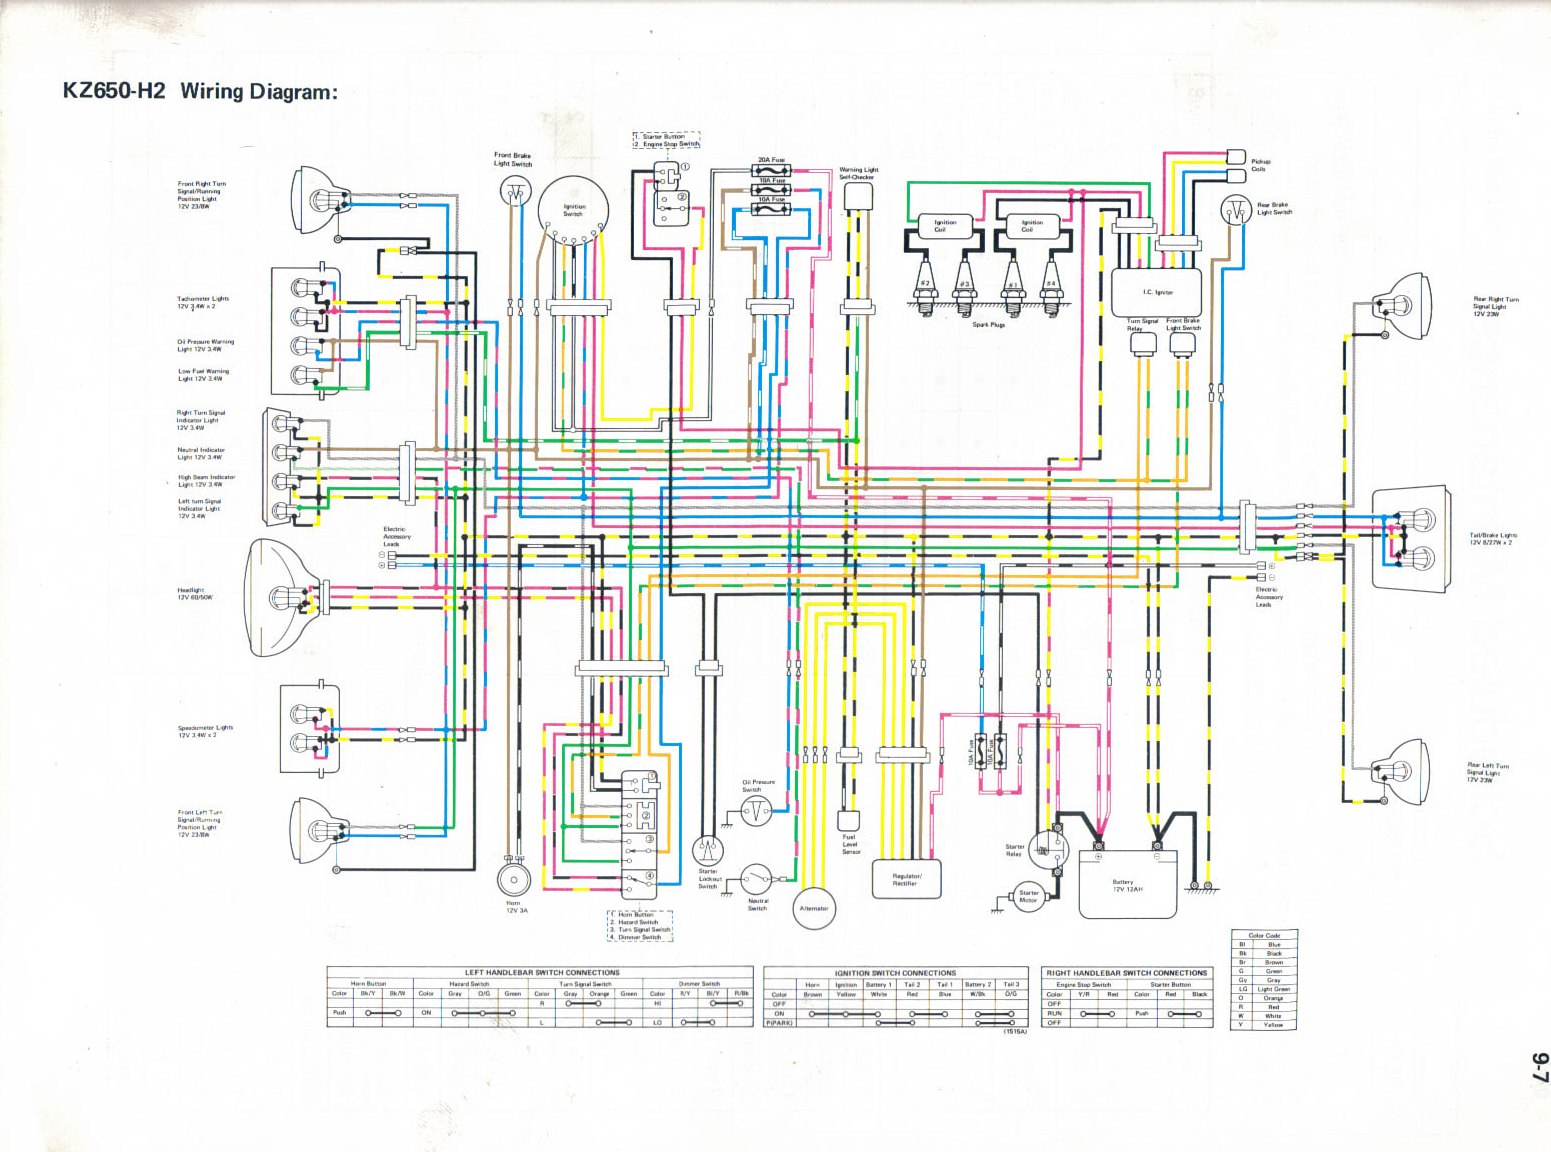 kz650 info wiring diagrams rh diagrams kz650 info Automotive Wiring Harness Truck Wiring Harness